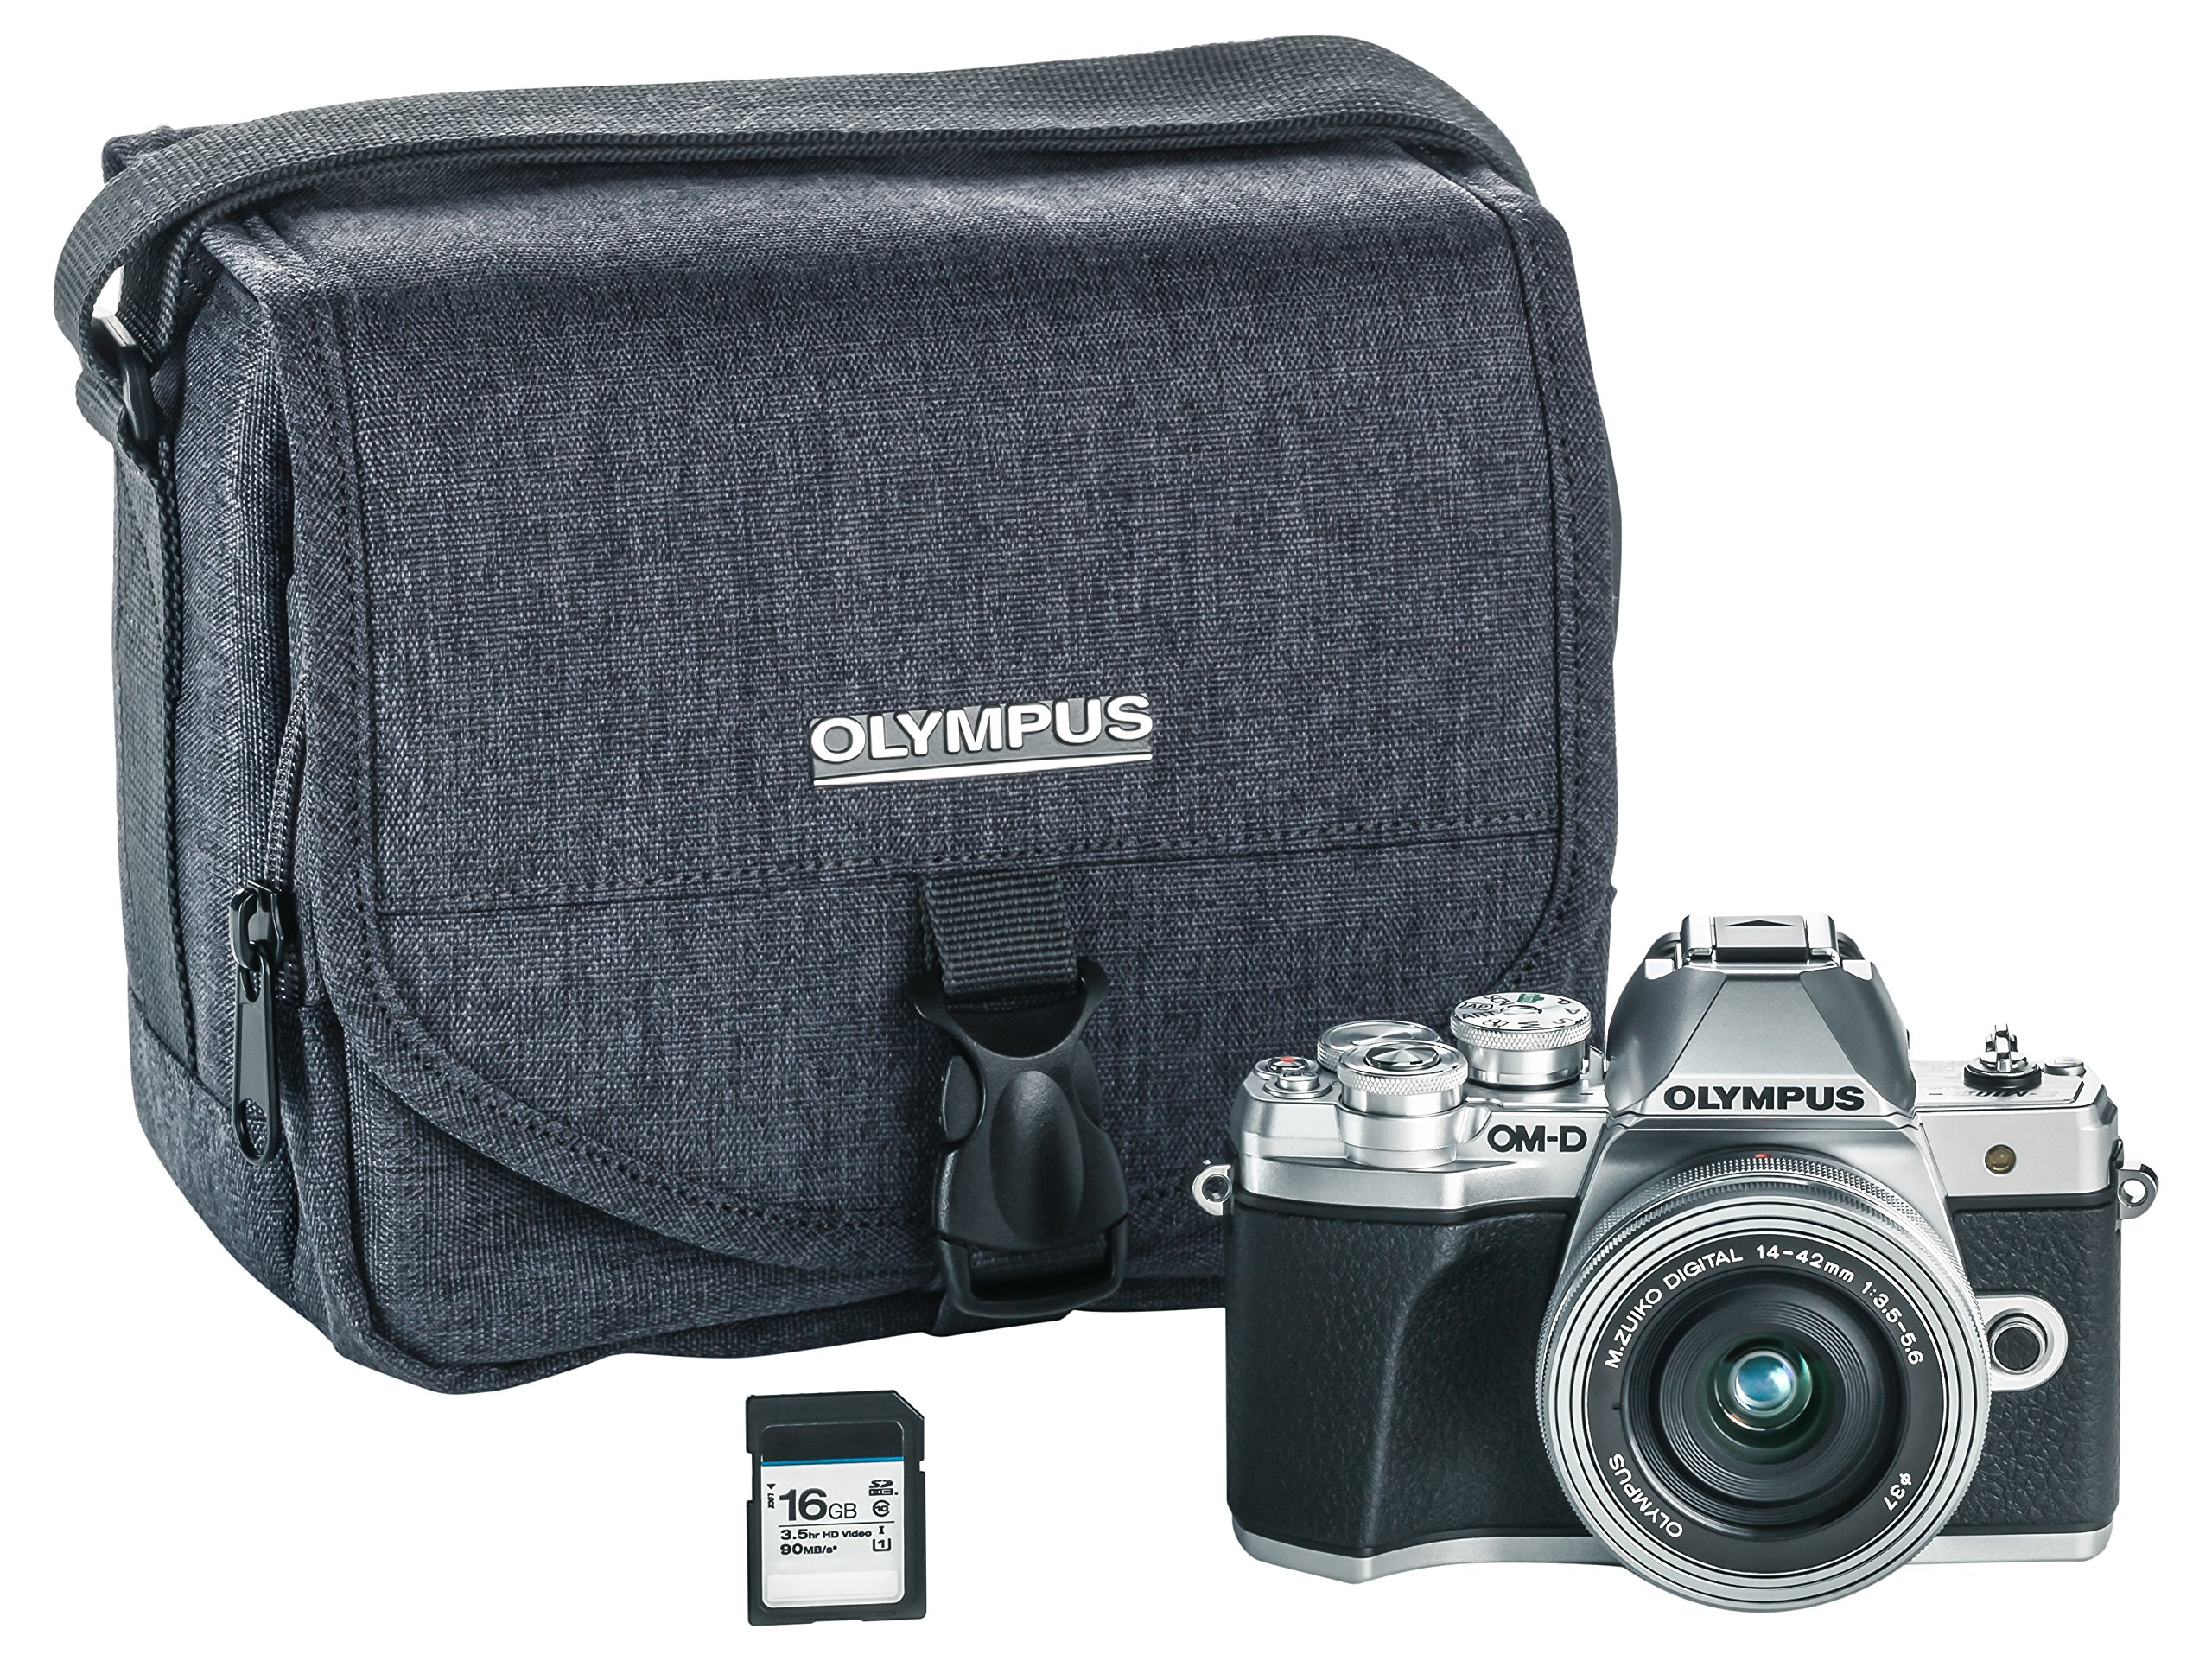 Olympus OM-D E-M10 Mark III camera kit with 14-42mm EZ lens (silver), Camera Bag & Memory Card , Wi-Fi enabled, 4K video by Olympus